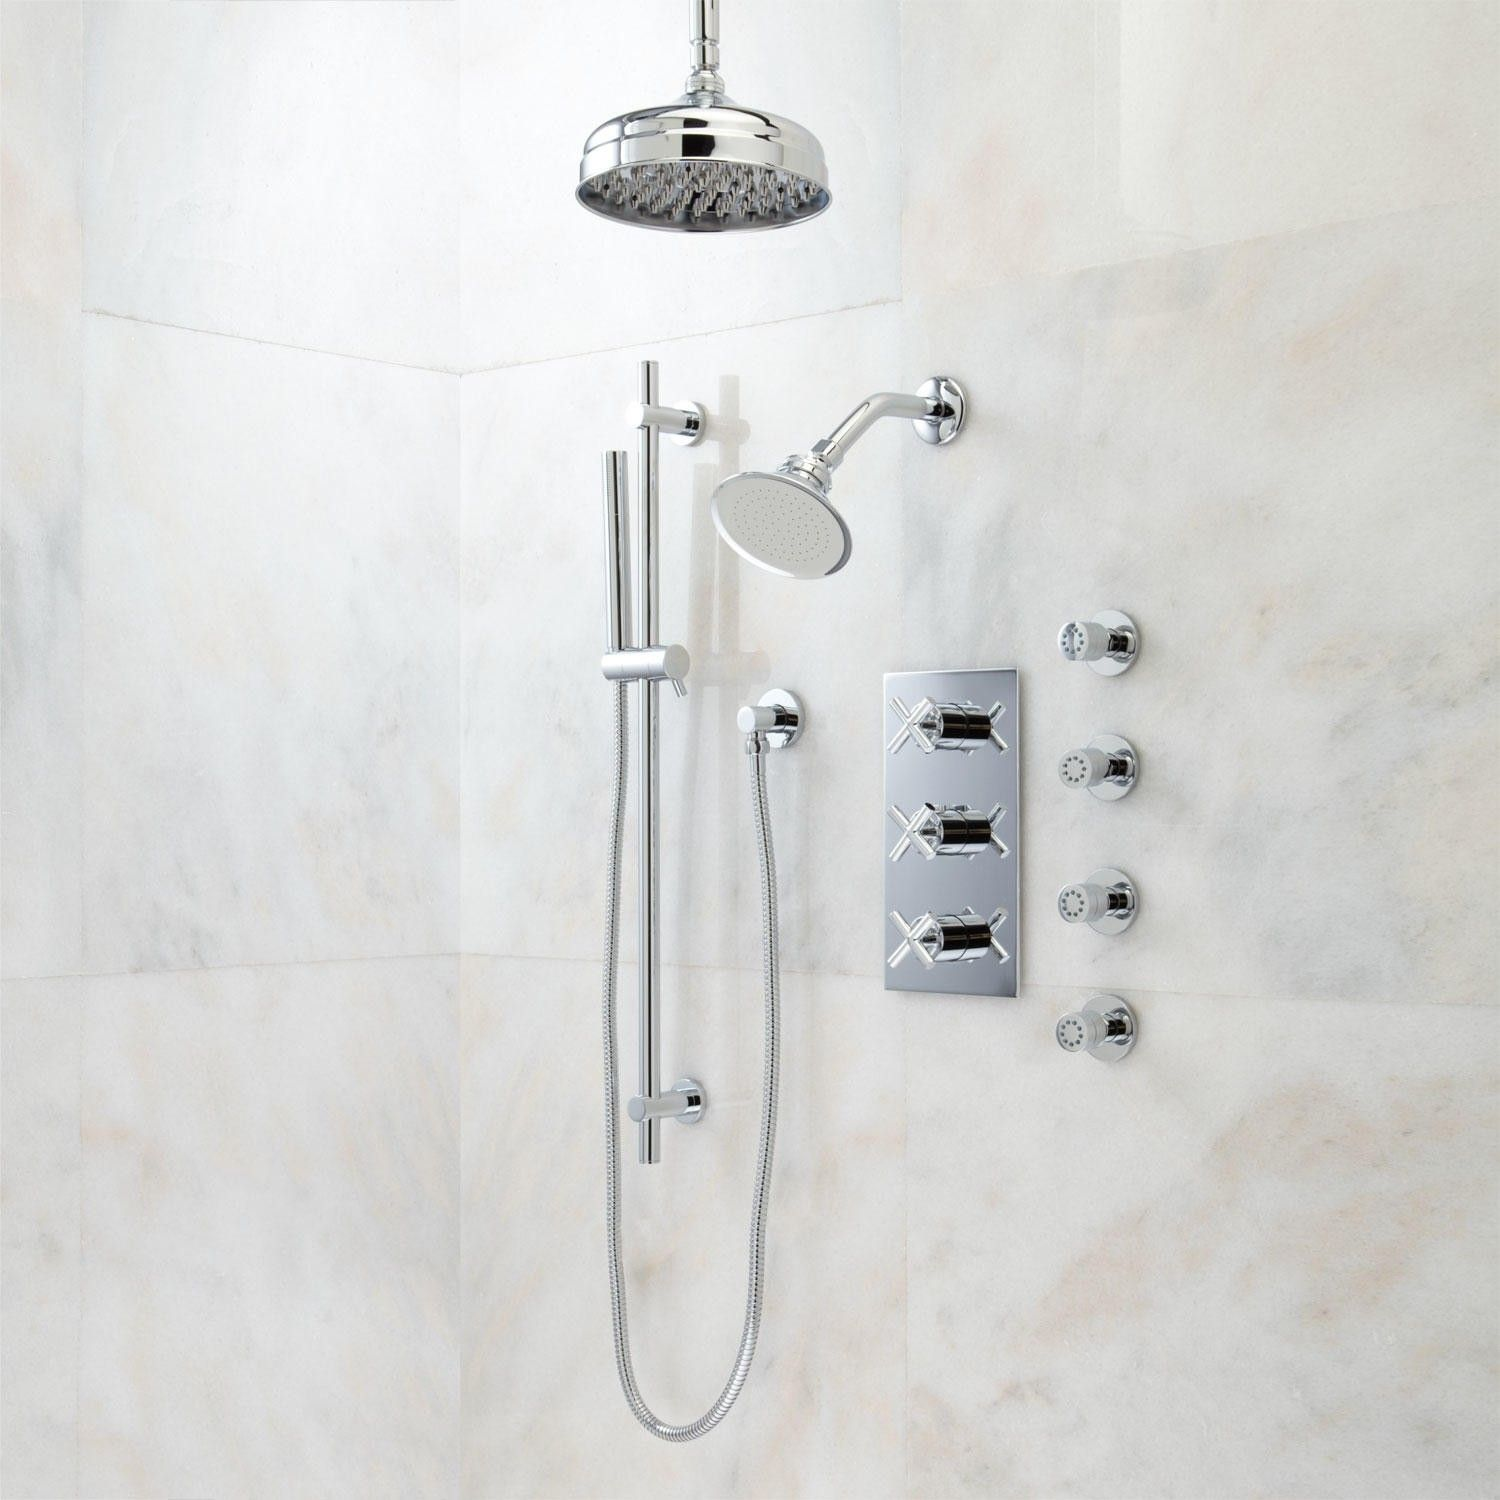 Exira Thermostatic Shower System - Dual Shower Heads, Hand Shower ...